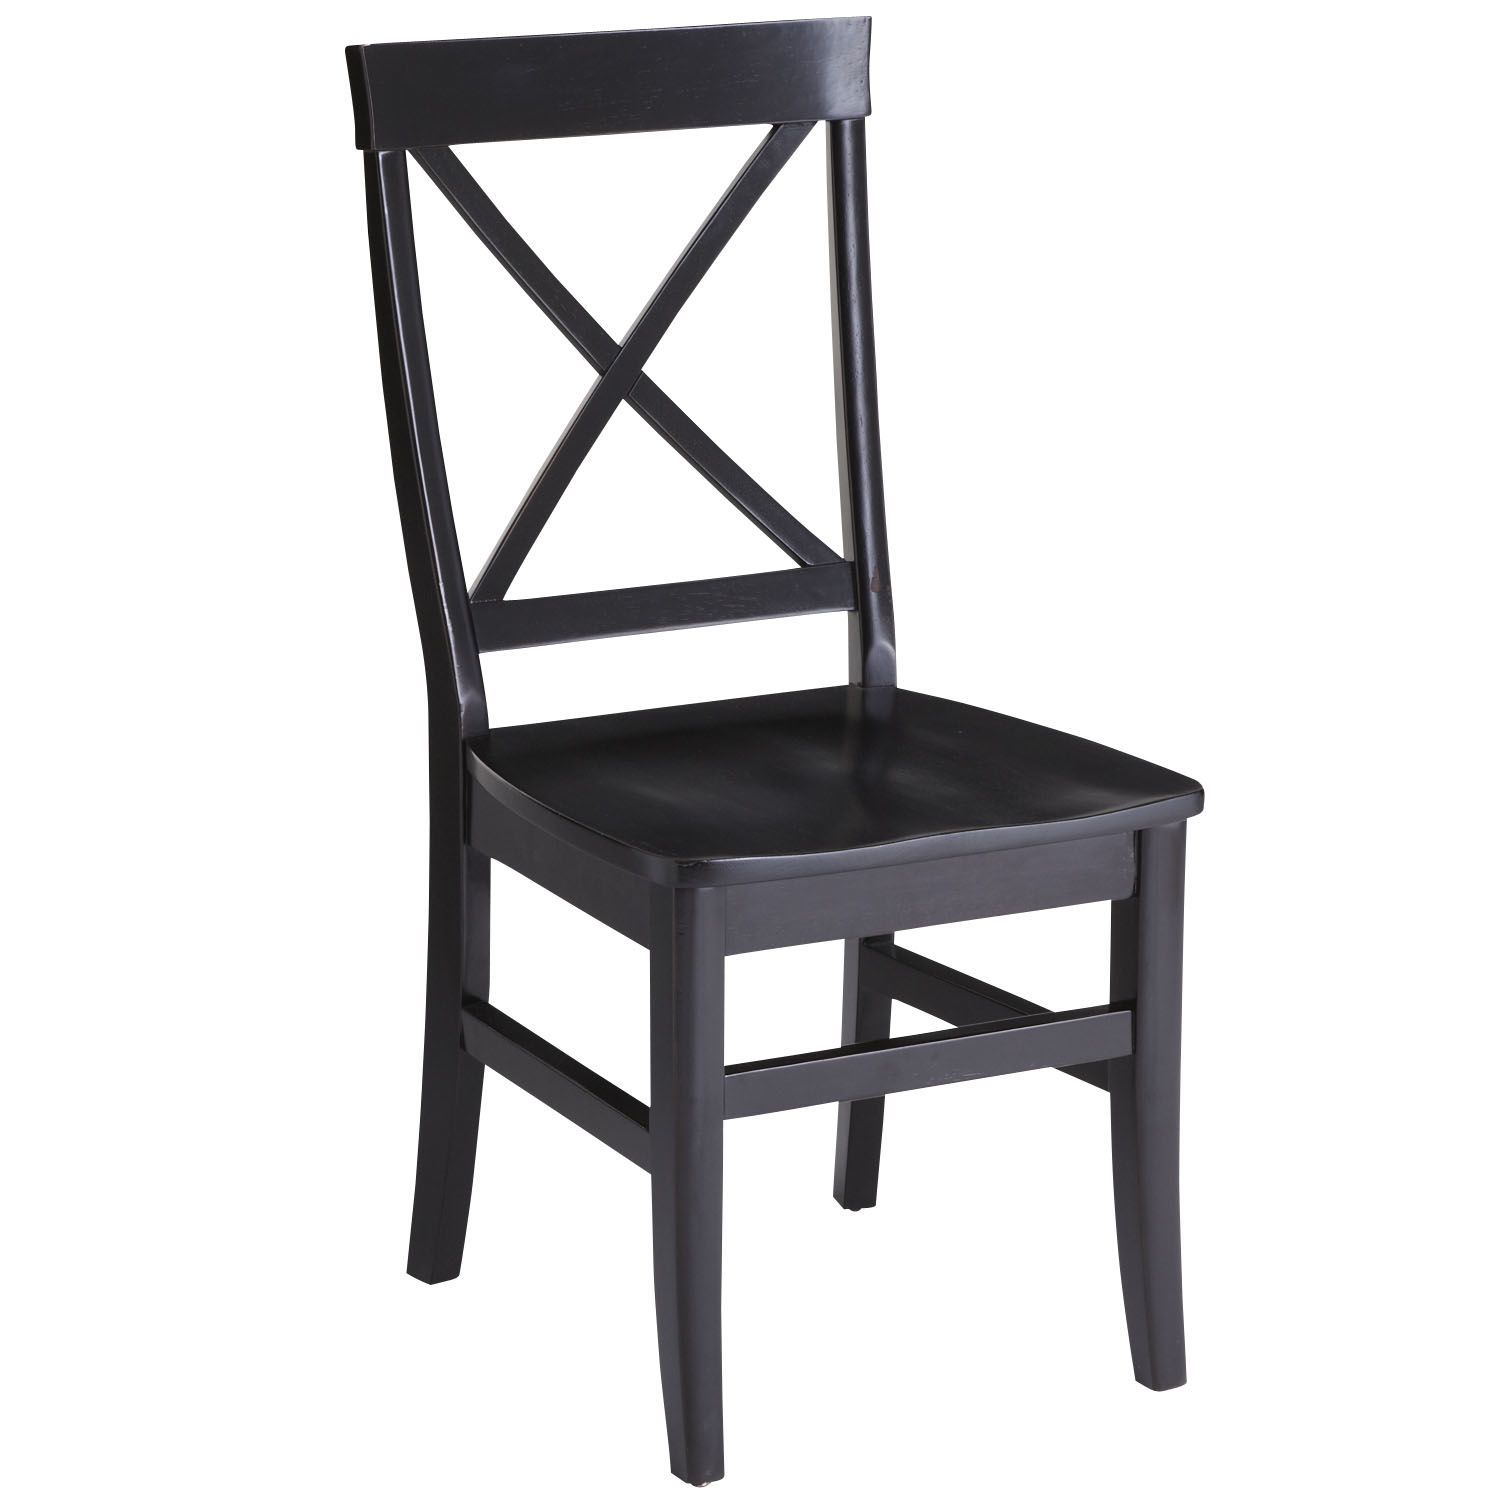 Torrance Rubbed Black Dining Chair | Side chair, Dining and Apartments